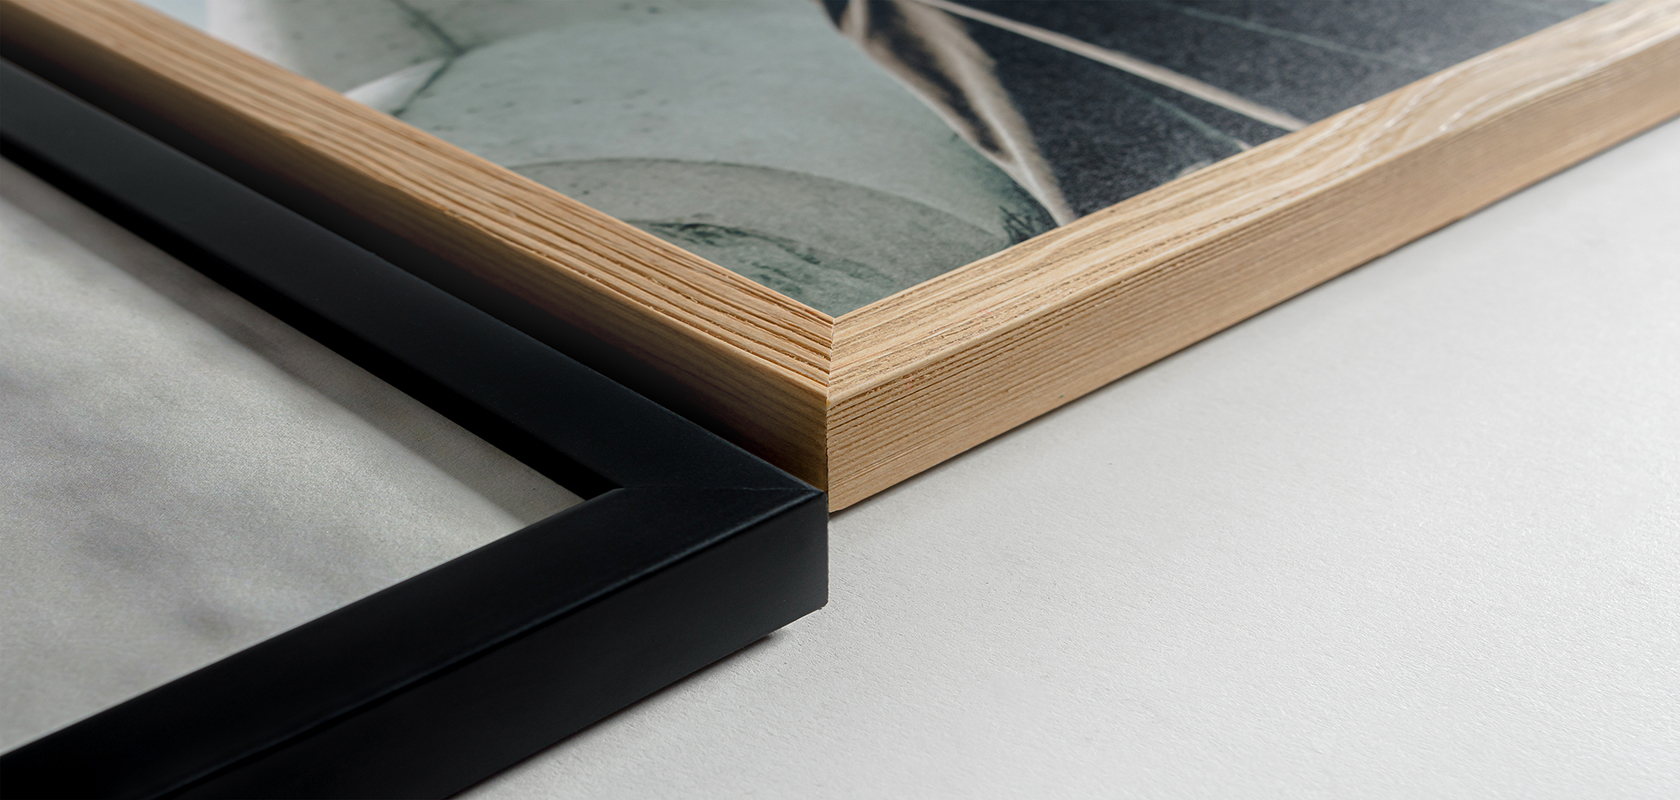 Wooden frame available in matte black or natural wood